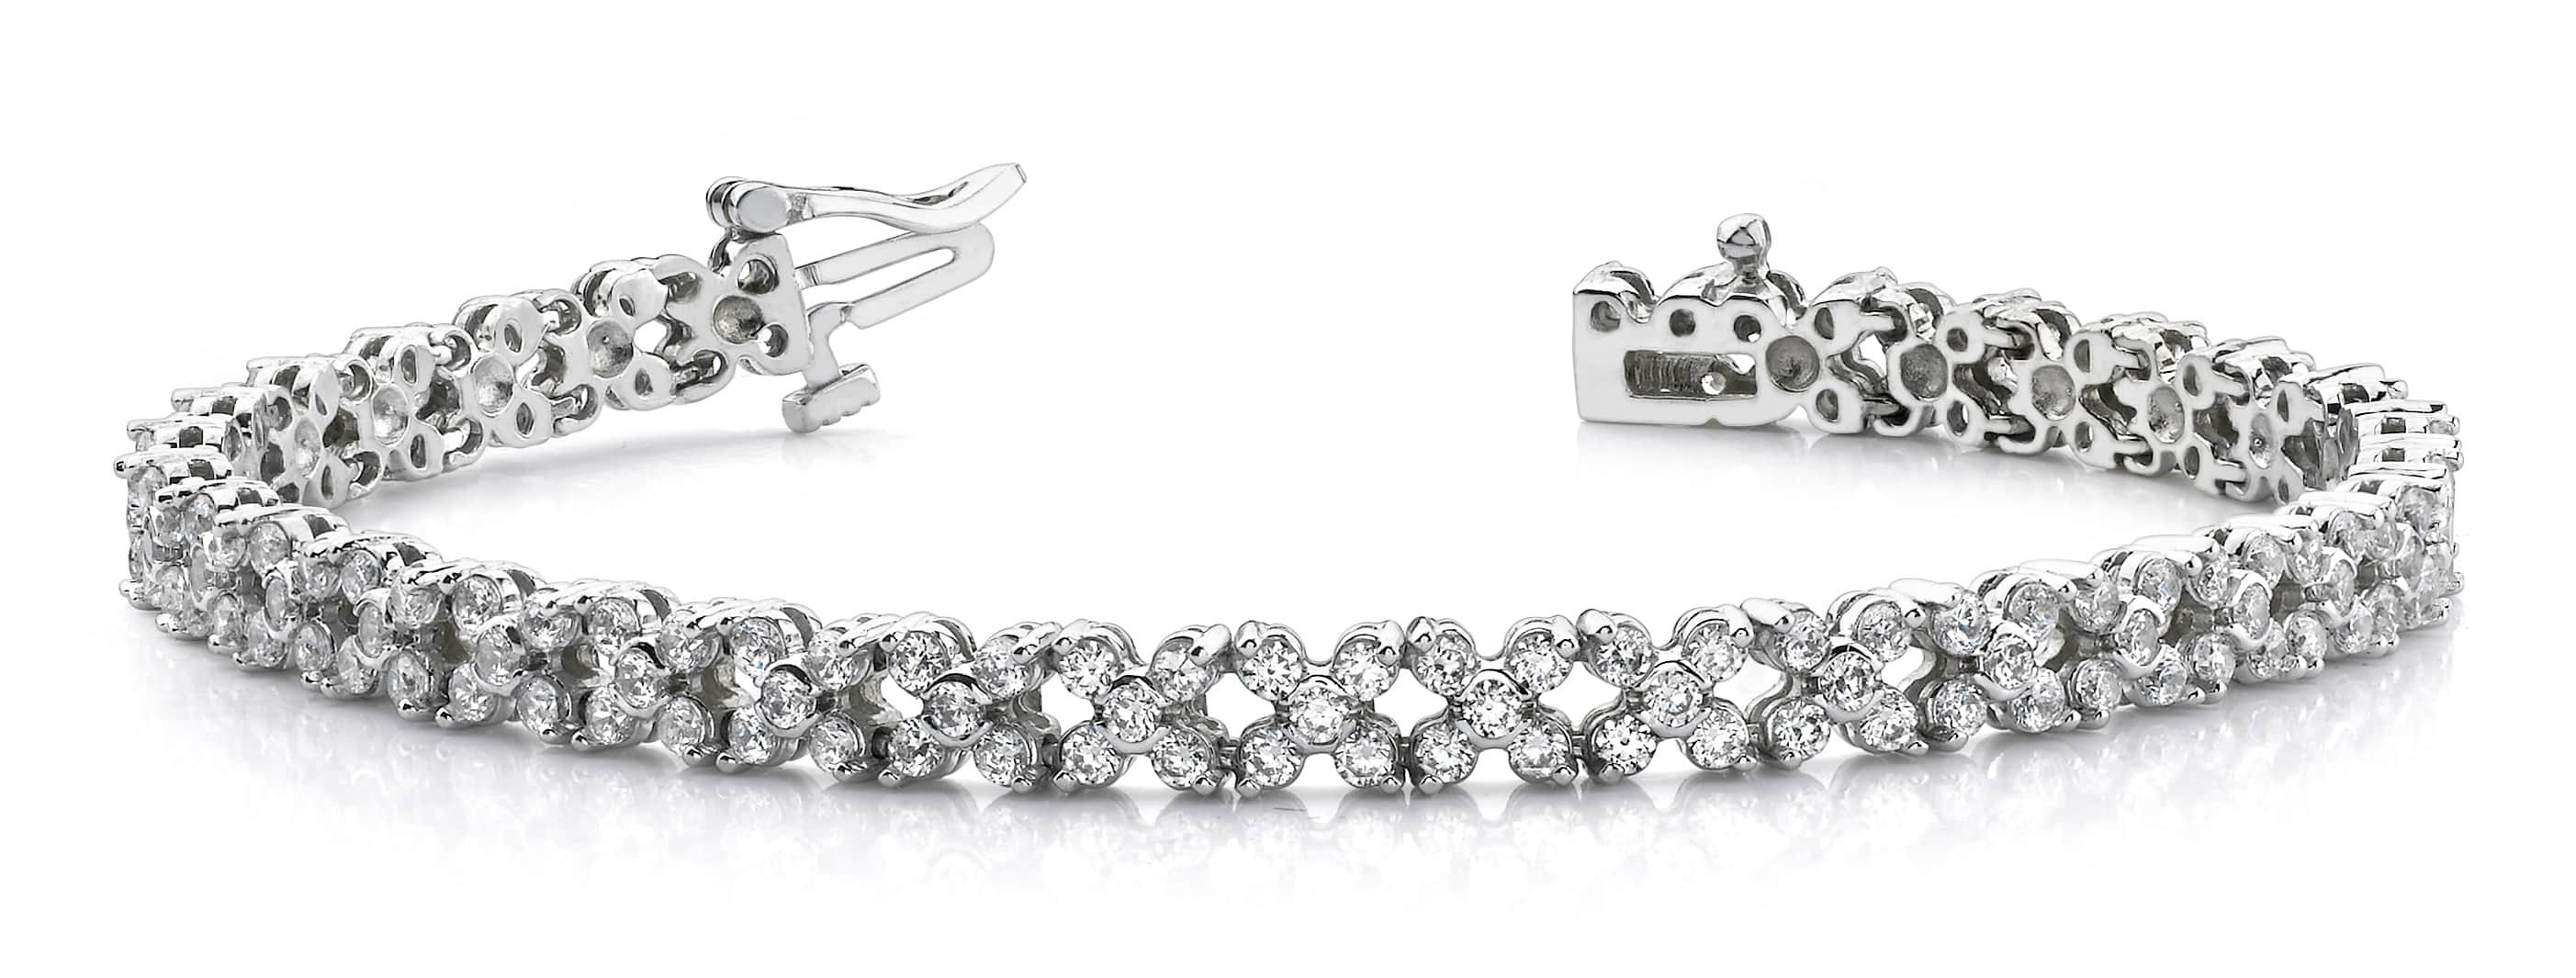 Diamond Round Flower Bracelet 3.91 Carat Total Weight